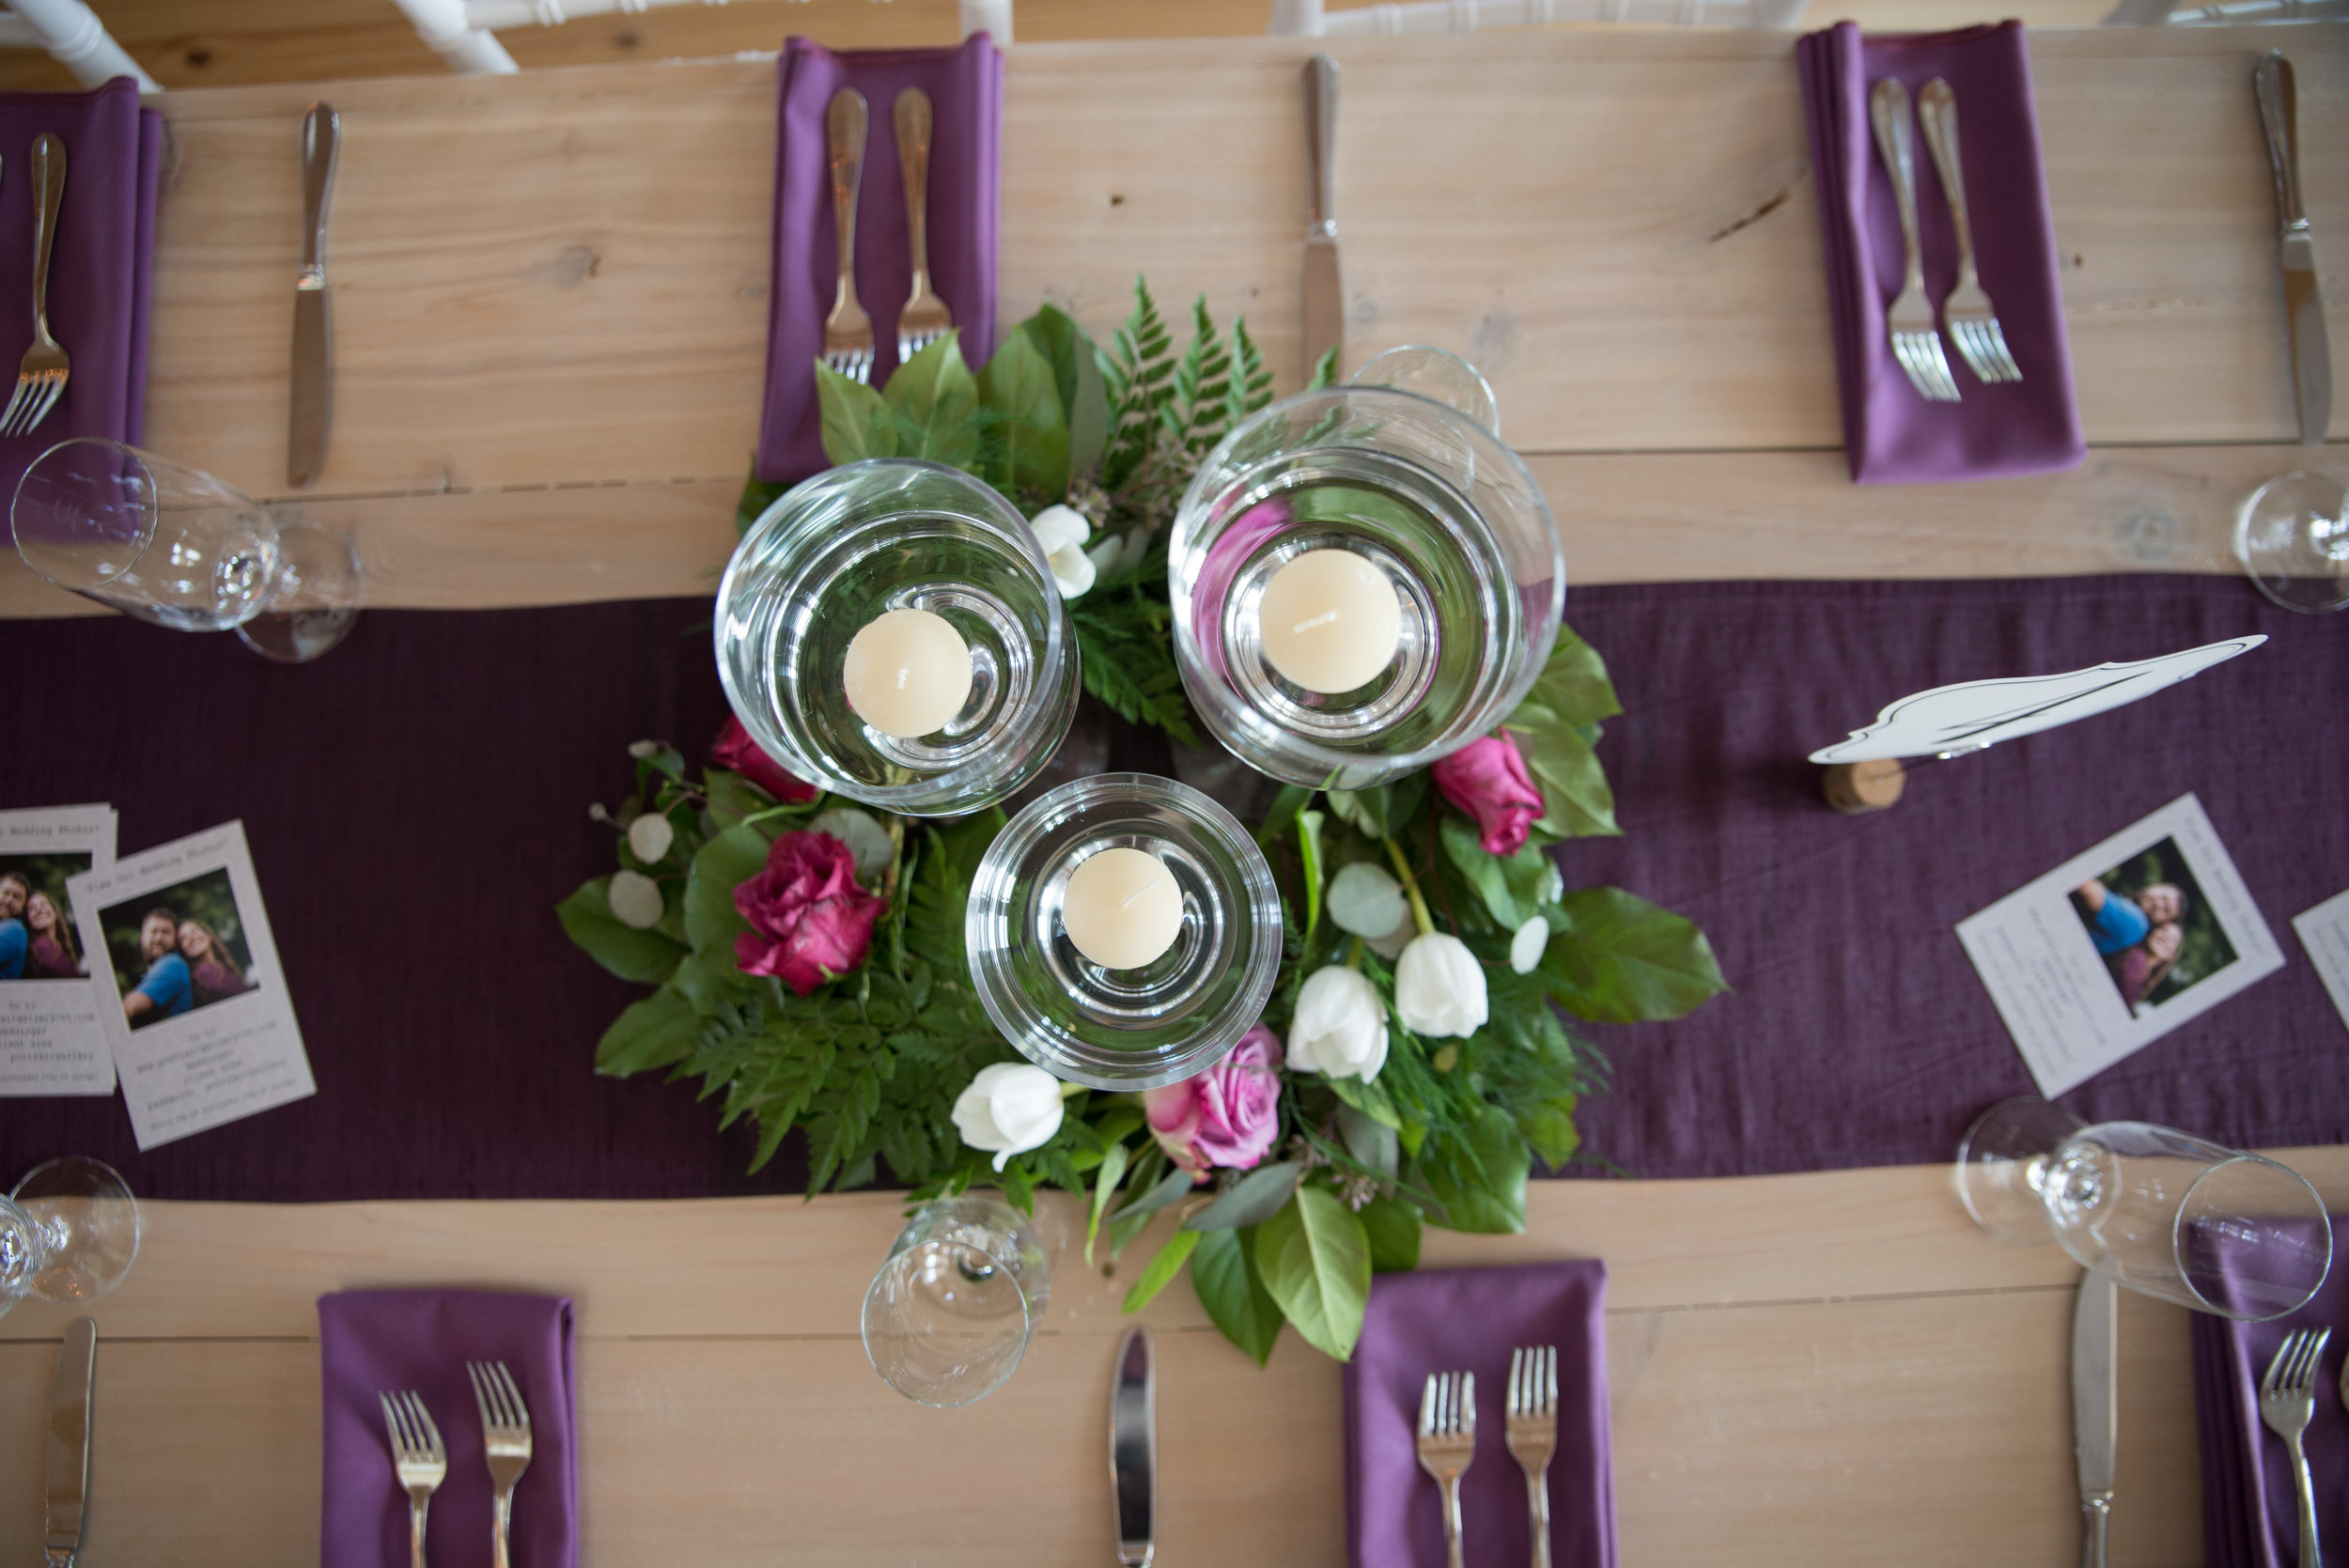 Our beautiful Custom Built Farm Tables with a white-washed wood Finish not only match our interior, but provide a natural finish that makes your color accents POP! Natural wood and white color scheme is the perfect canvas for your Stowe Wedding.